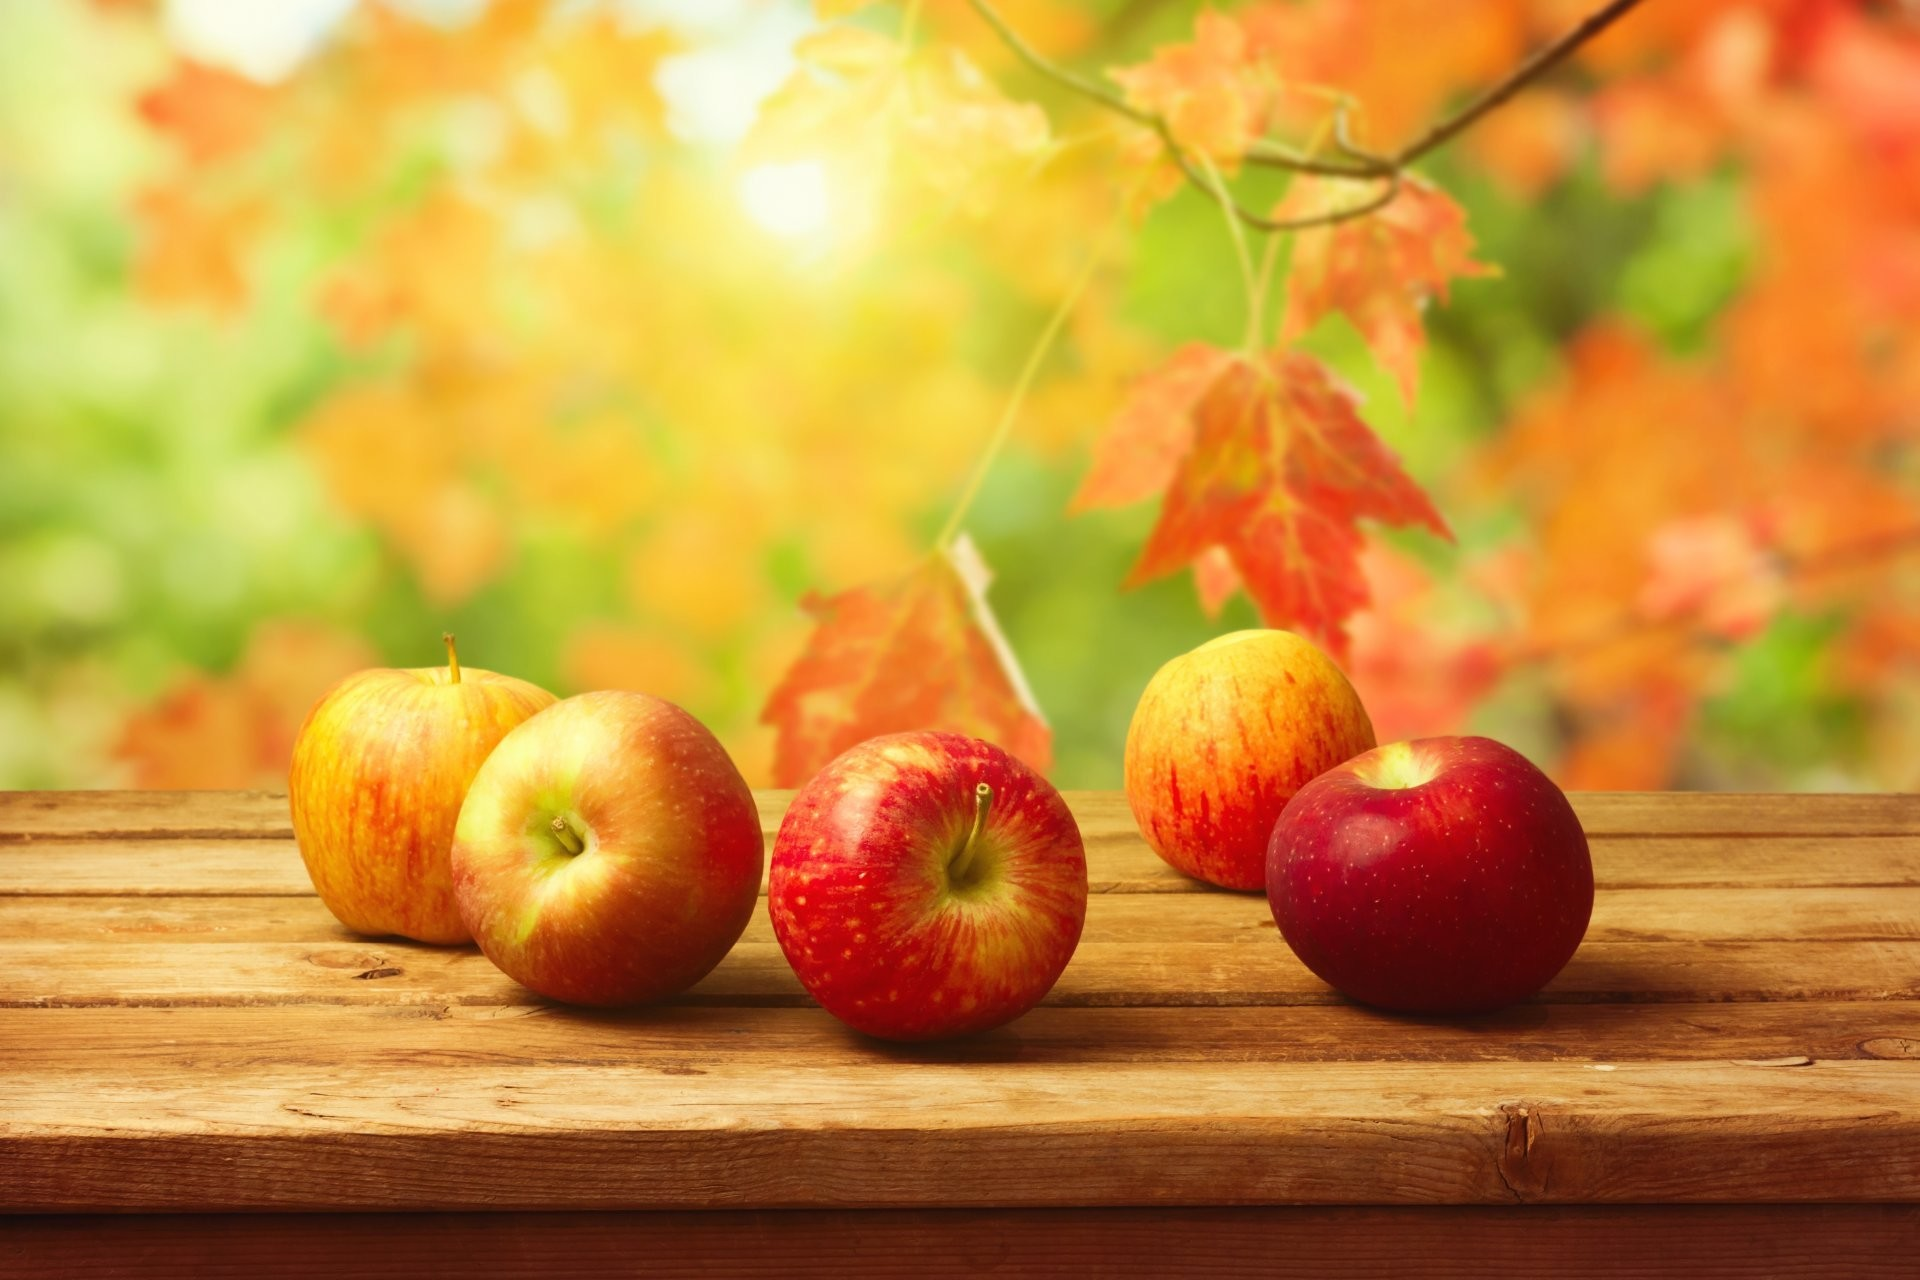 apples table fruits vintage background autumn leaves HD wallpaper